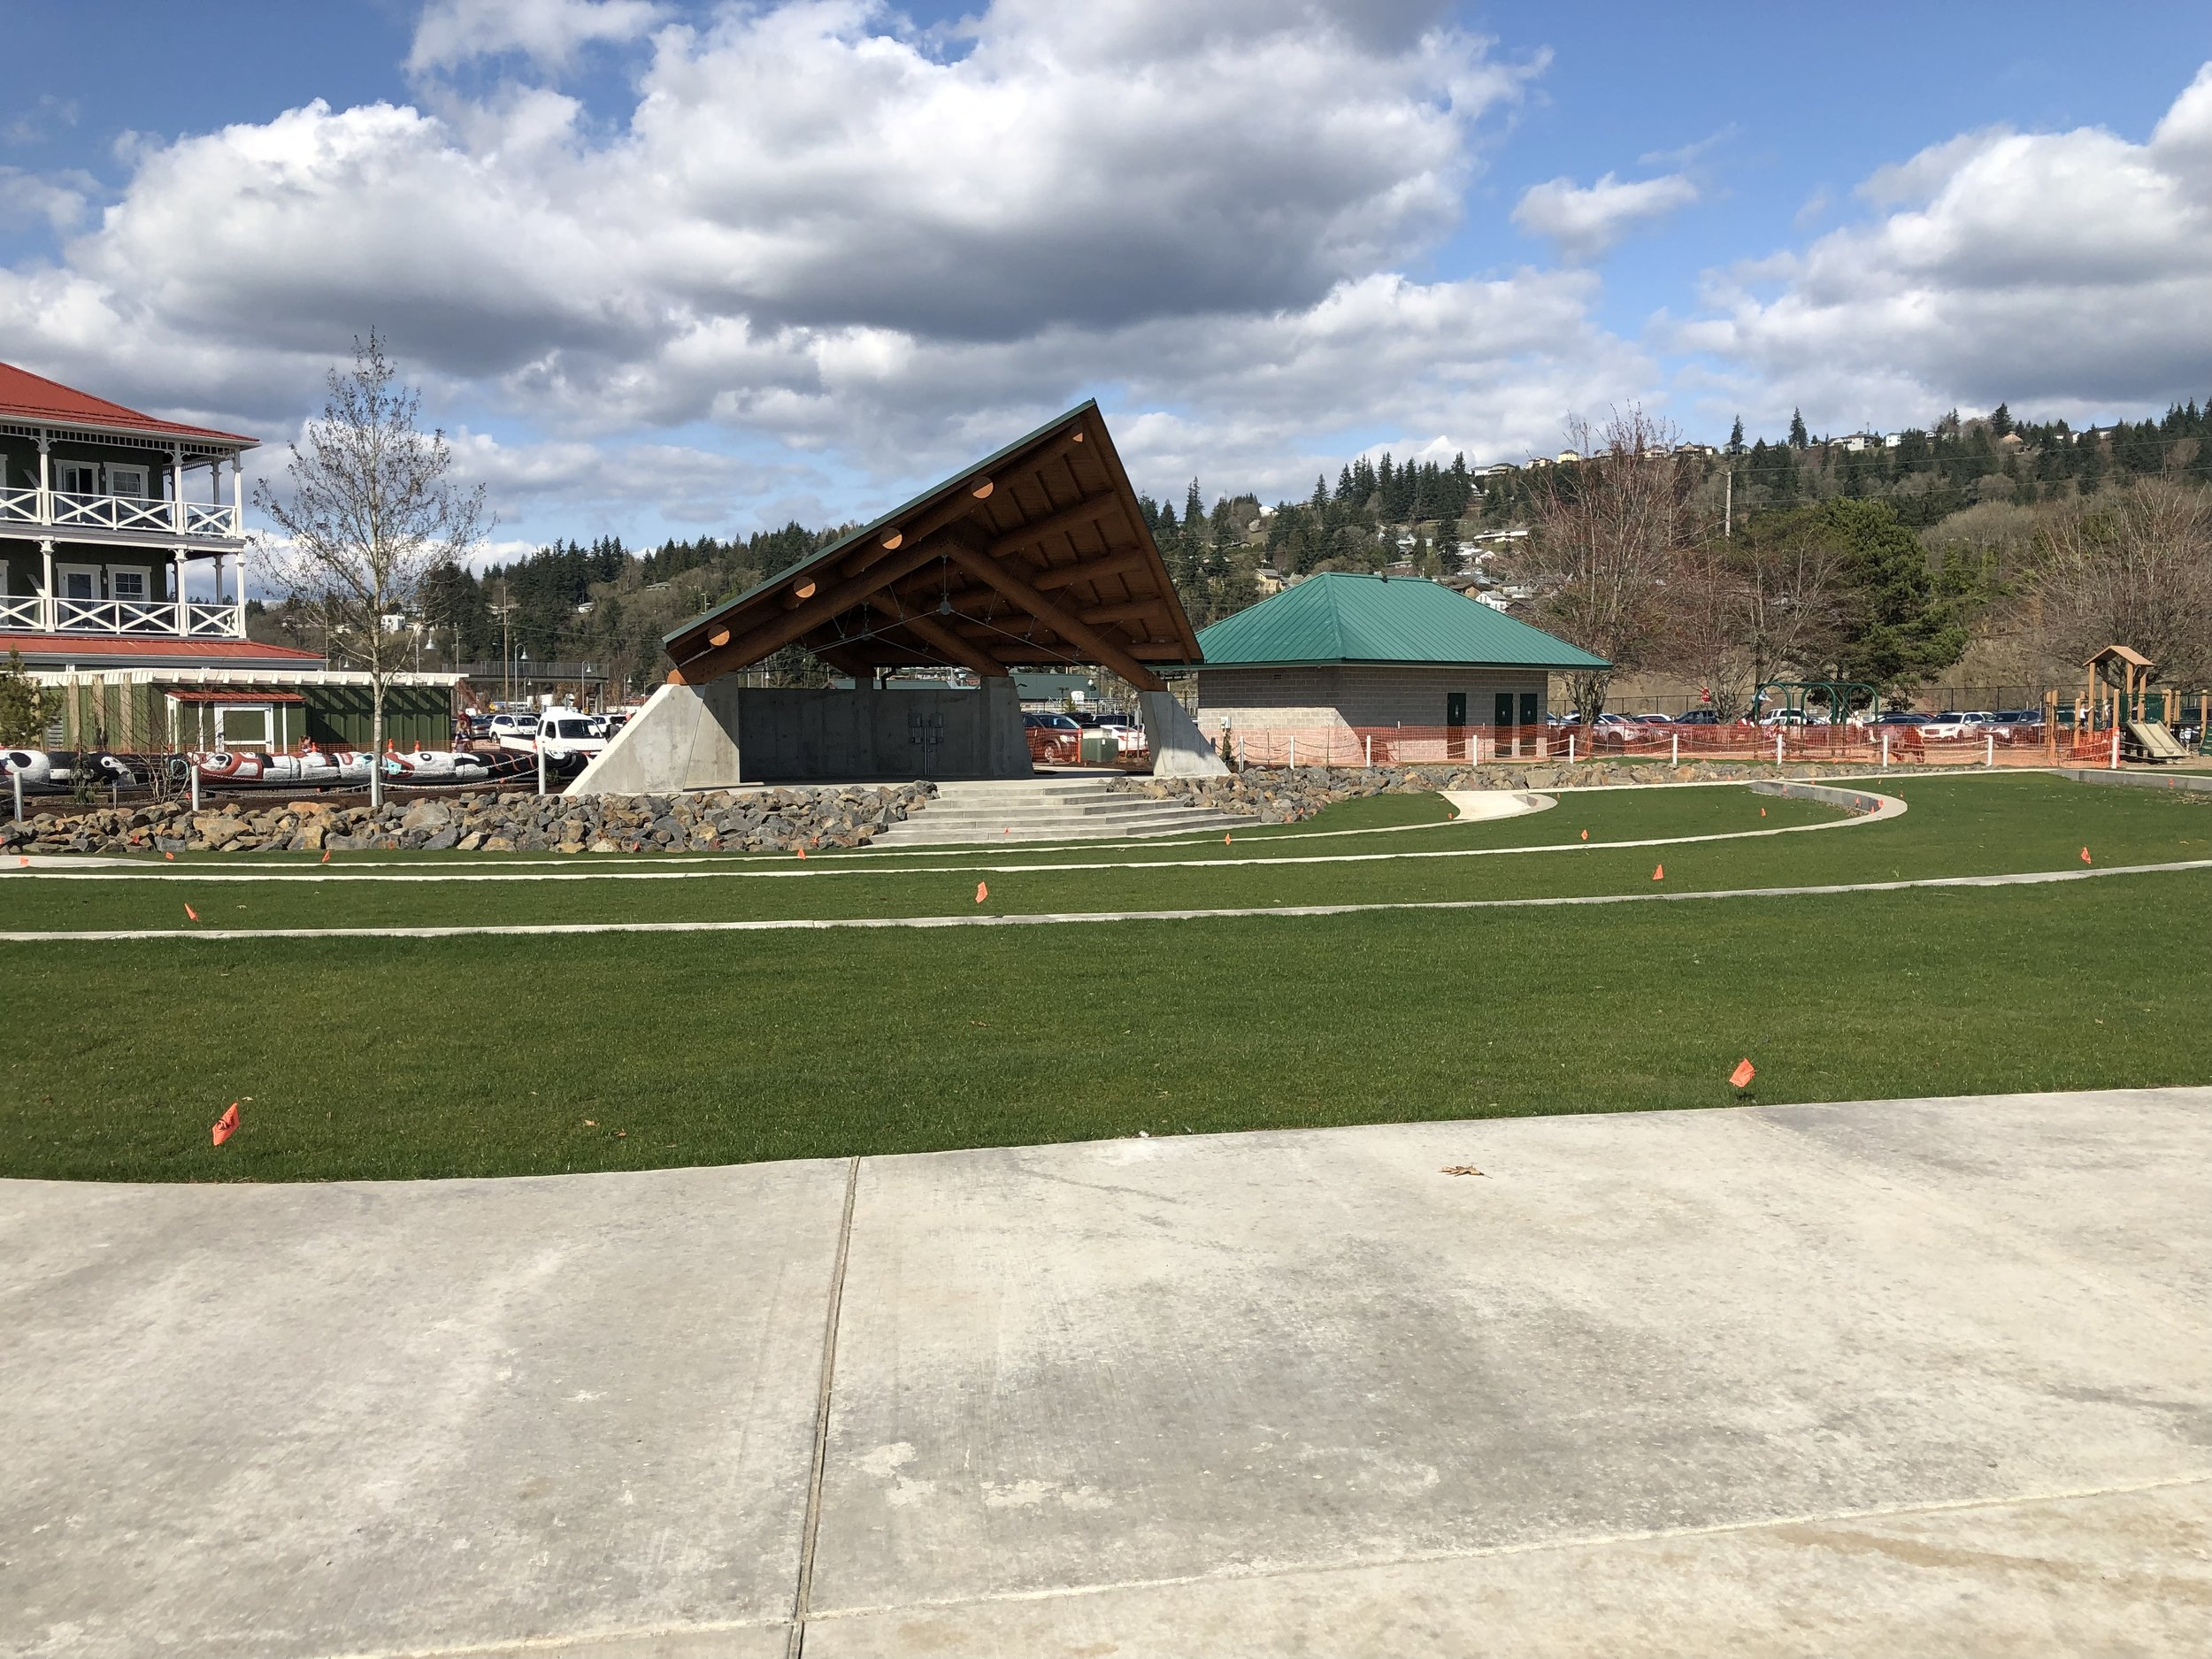 The new amphitheater next to the main hotel at McMenamin's Kalama Harbor Lodge. You can also see the playground at the right and the start of the main hotel at the left. Great spot. Image Courtesy: Dan Meyers